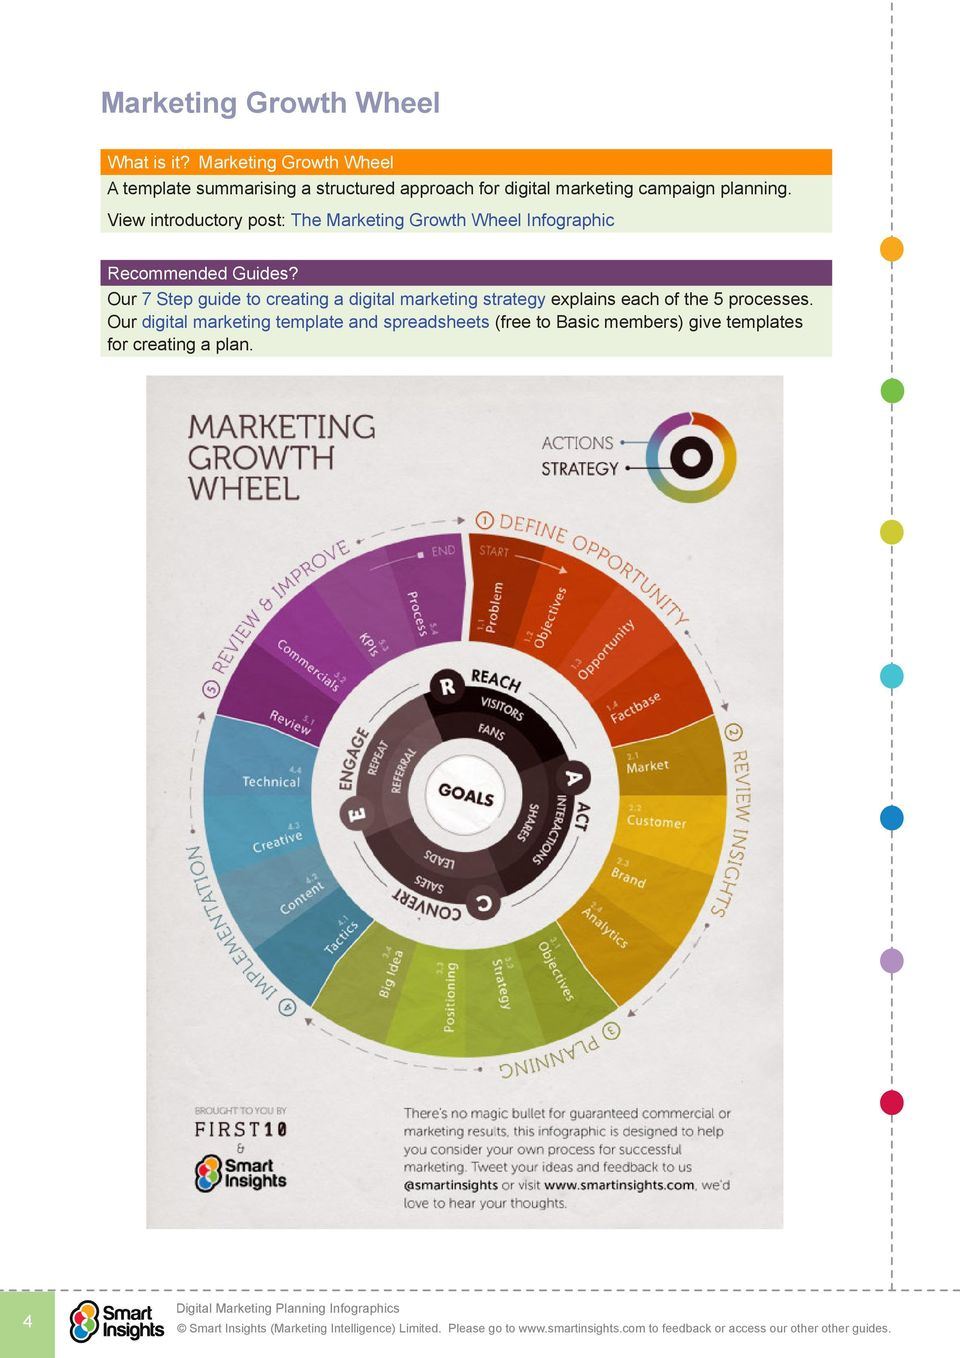 View introductory post: The Marketing Growth Wheel Infographic Recommended Guides?